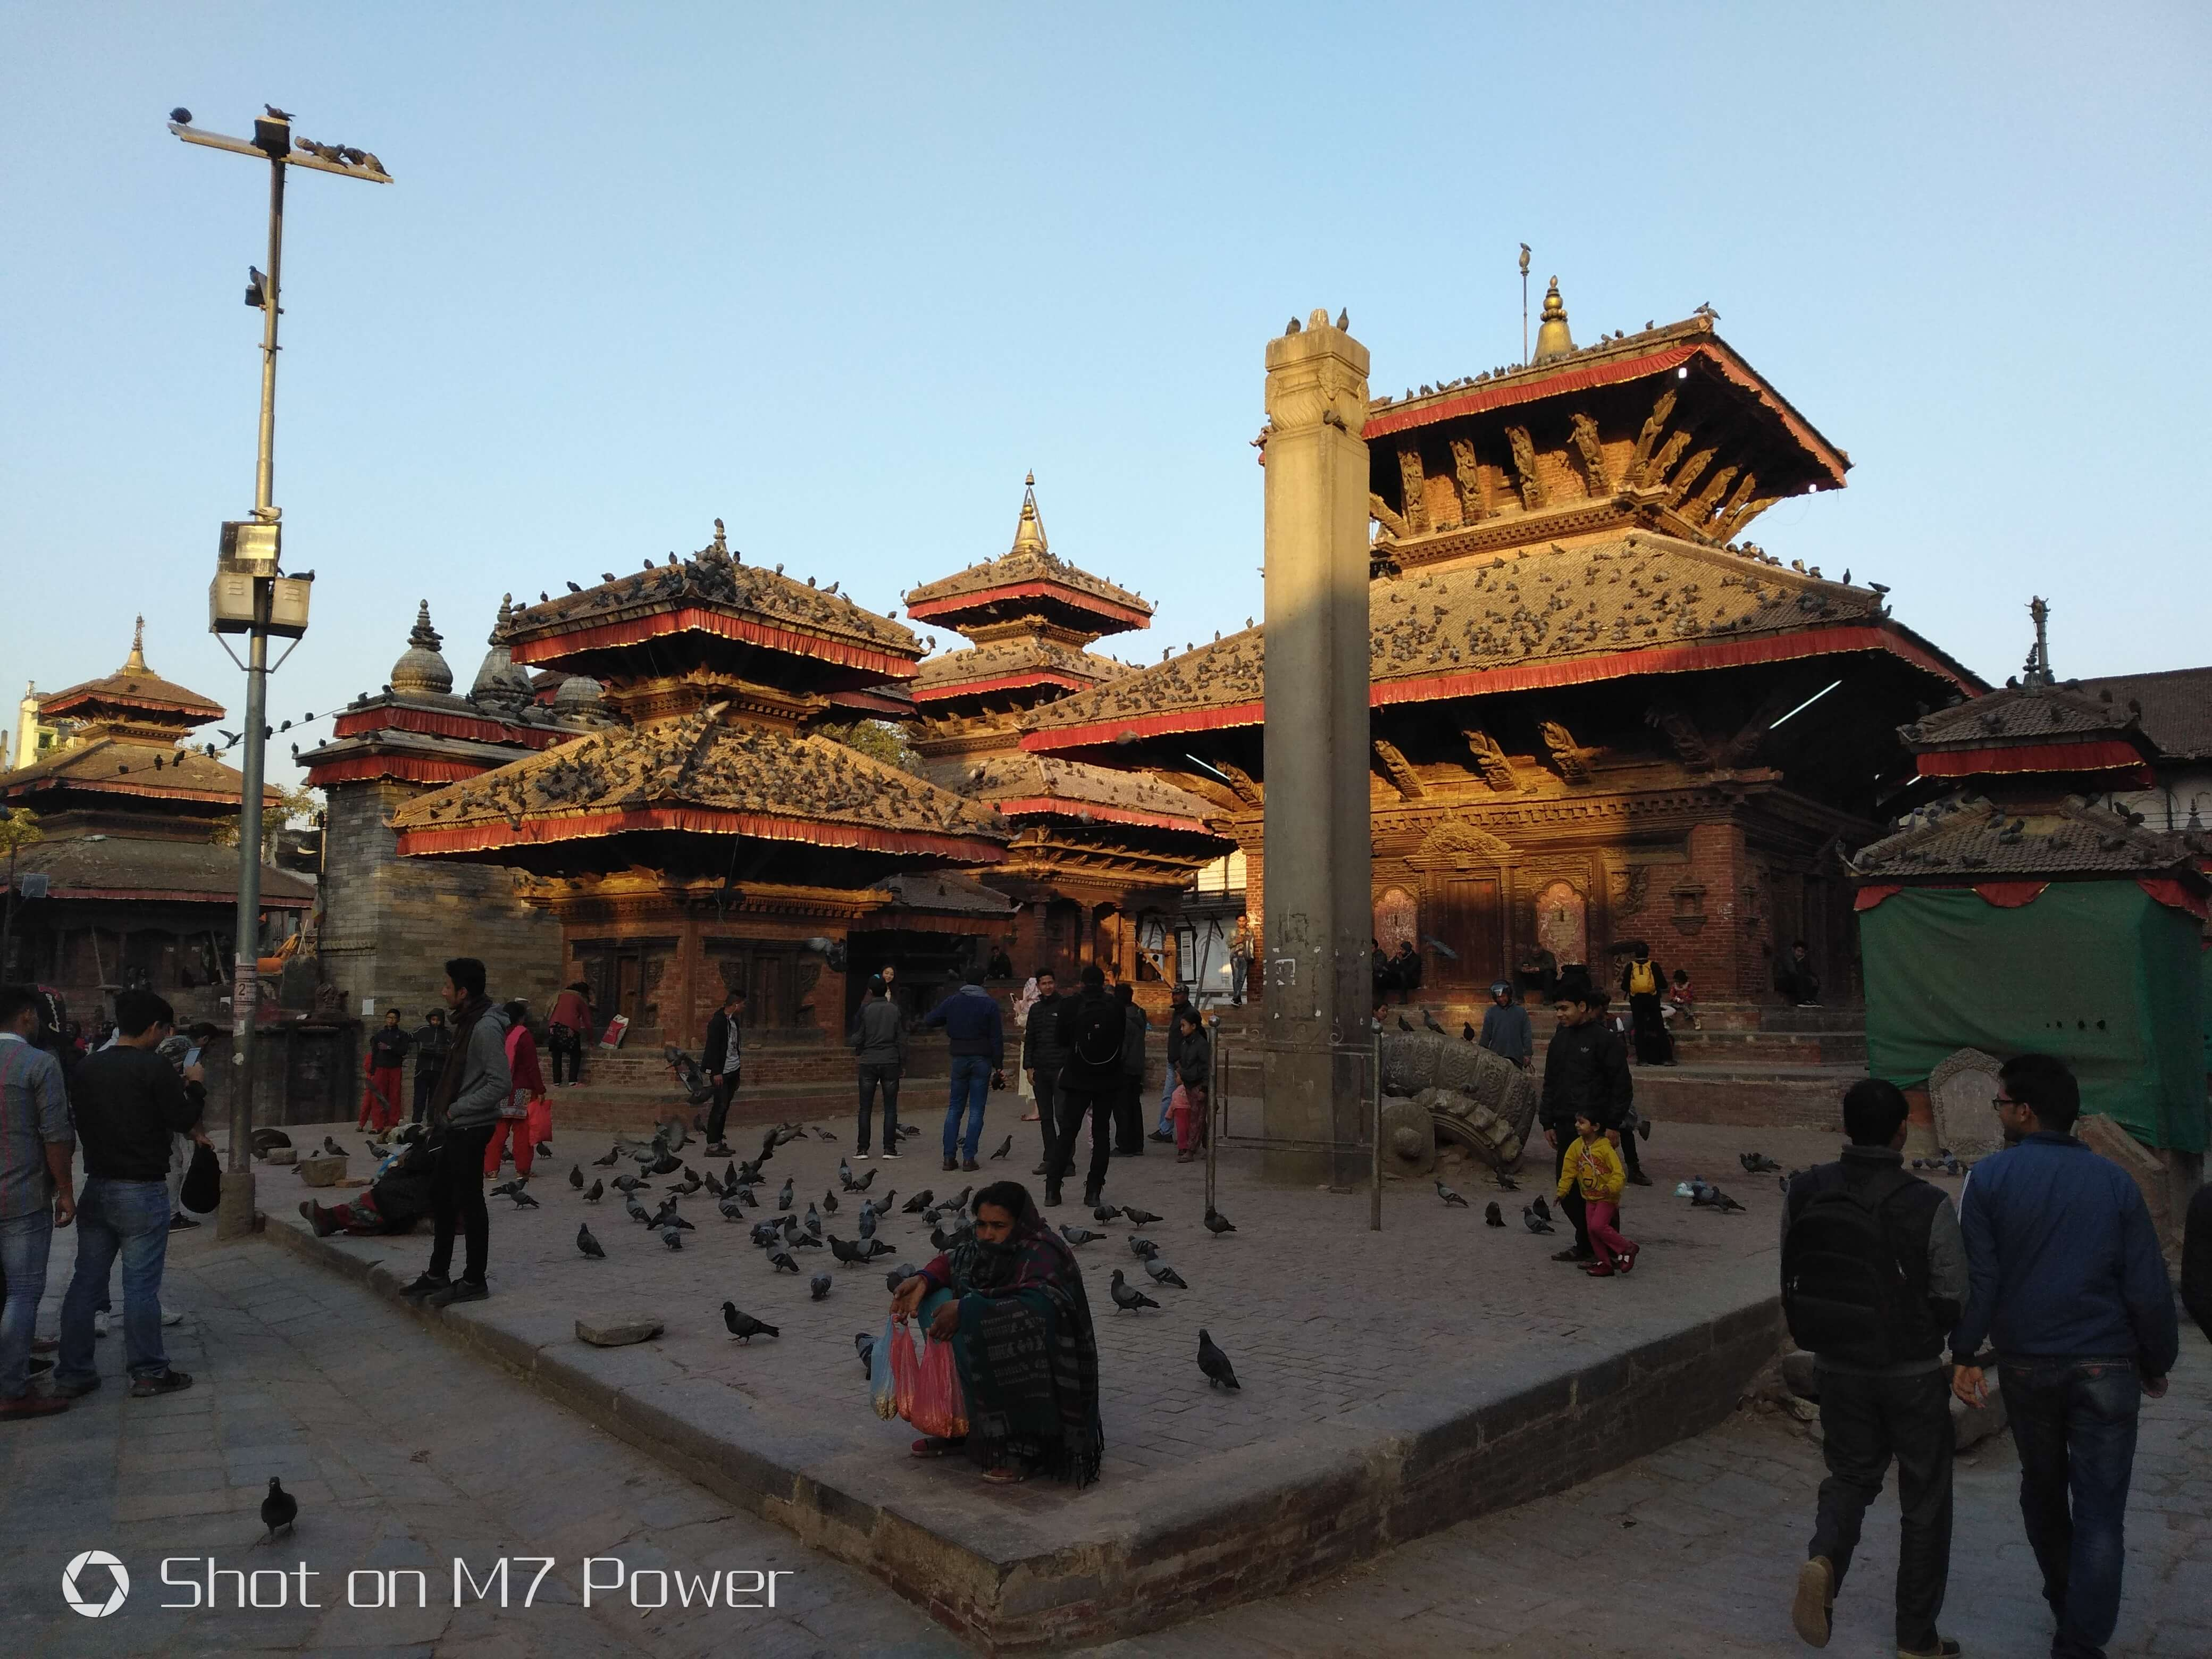 gionee m7 power review camera sample